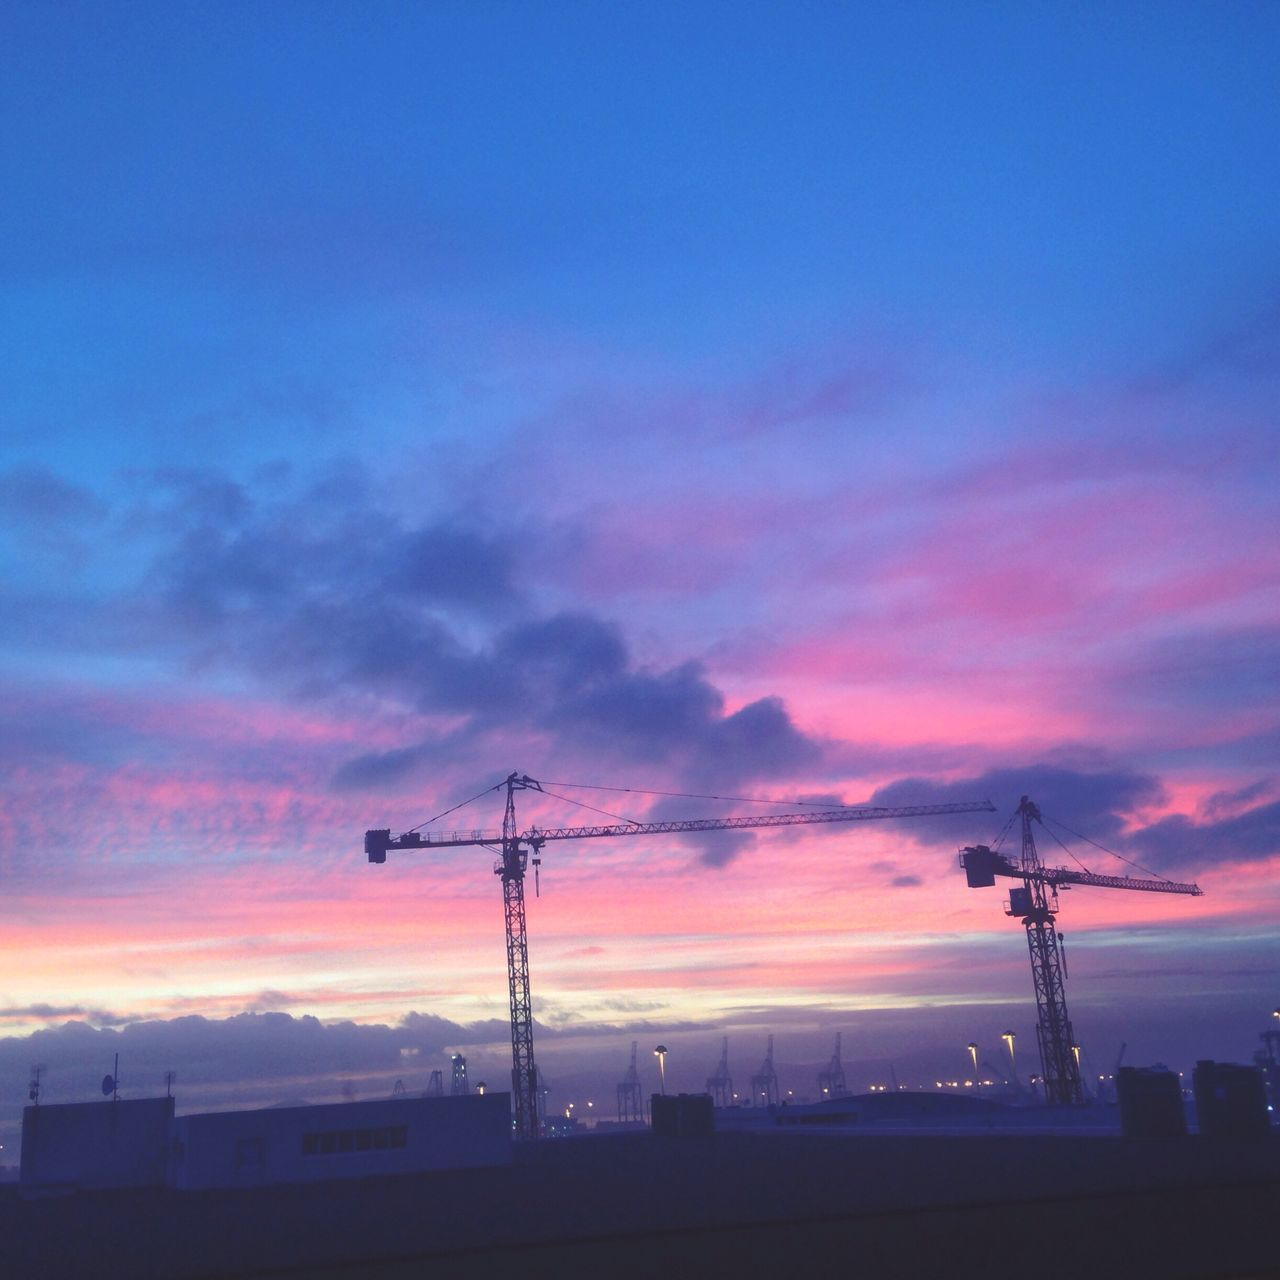 Office Building Office View Sunrise_Collection Sunrise Silhouette Landscape Nature Crane - Construction Machinery Early Morning Purple Sky EyeEm Nature Lover Eyeemphotography Iphonephotography EyeEm Best Shots - Landscape Eyeem Skyporn Eyeemsky Eyeem South Africa South Africa Cape Town, South Africa Cape Town Mother City Cape Town Beauty Officeview Officebuilding Office Hours